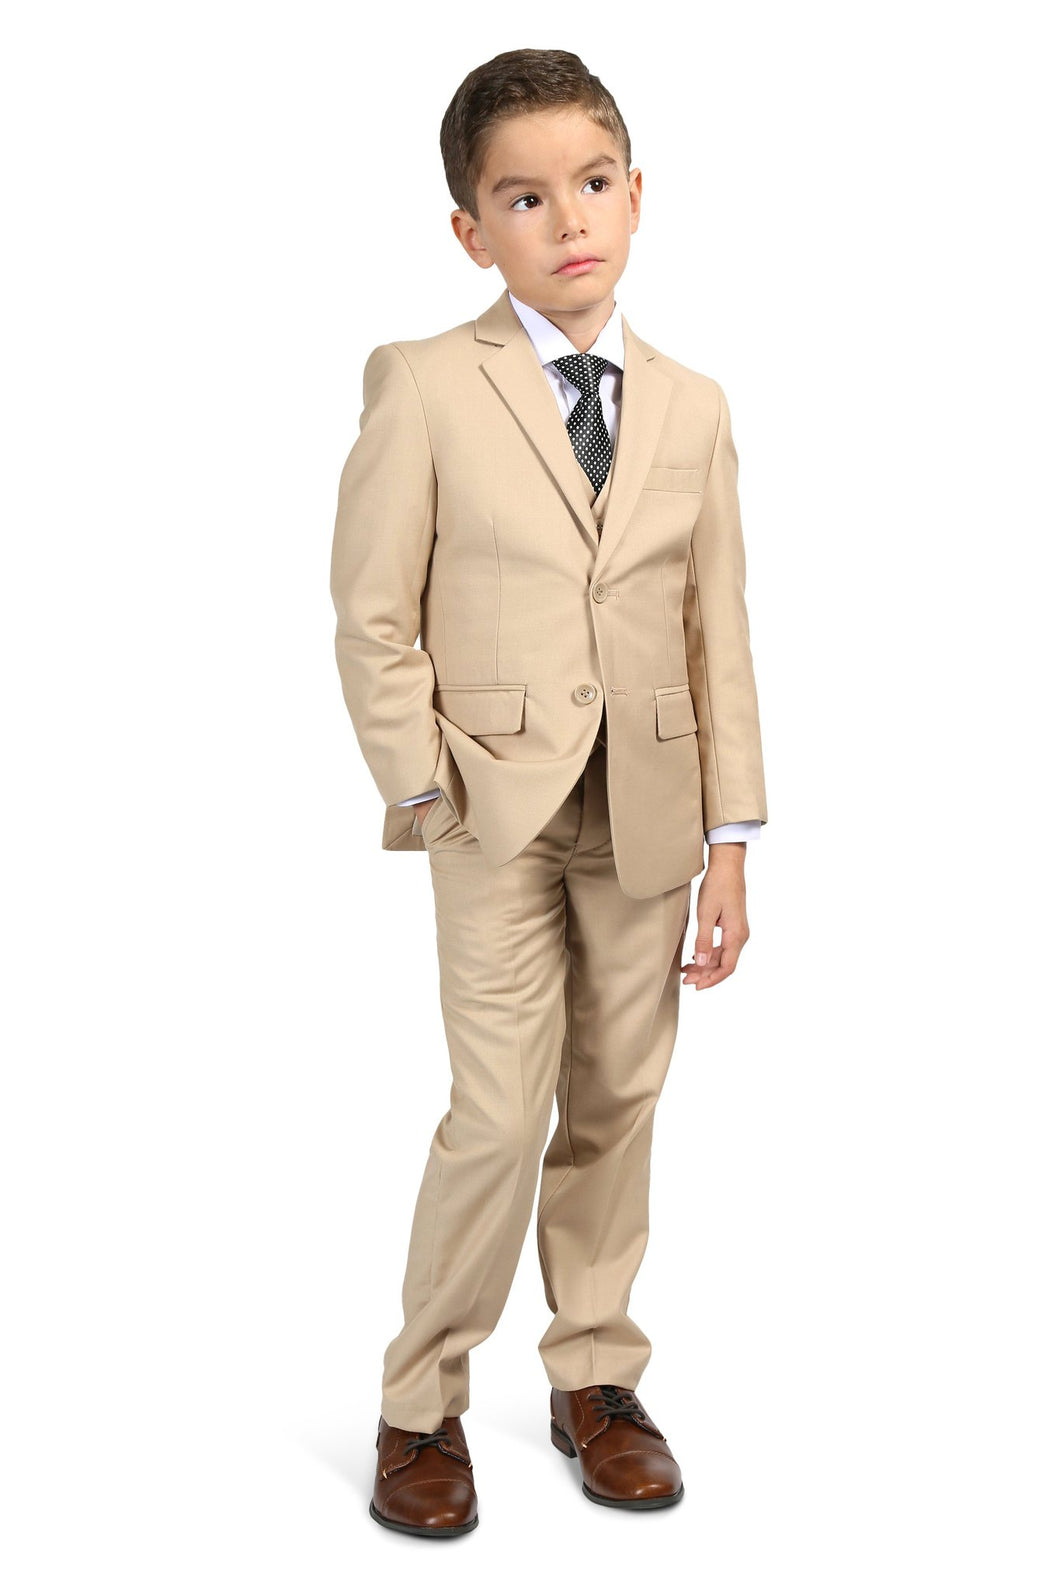 Braveman Little Boy's Suit  3 Piece Suit With Matching Shirt And Tie  Color - Bone Size- 2 Toddler SKU : 007001